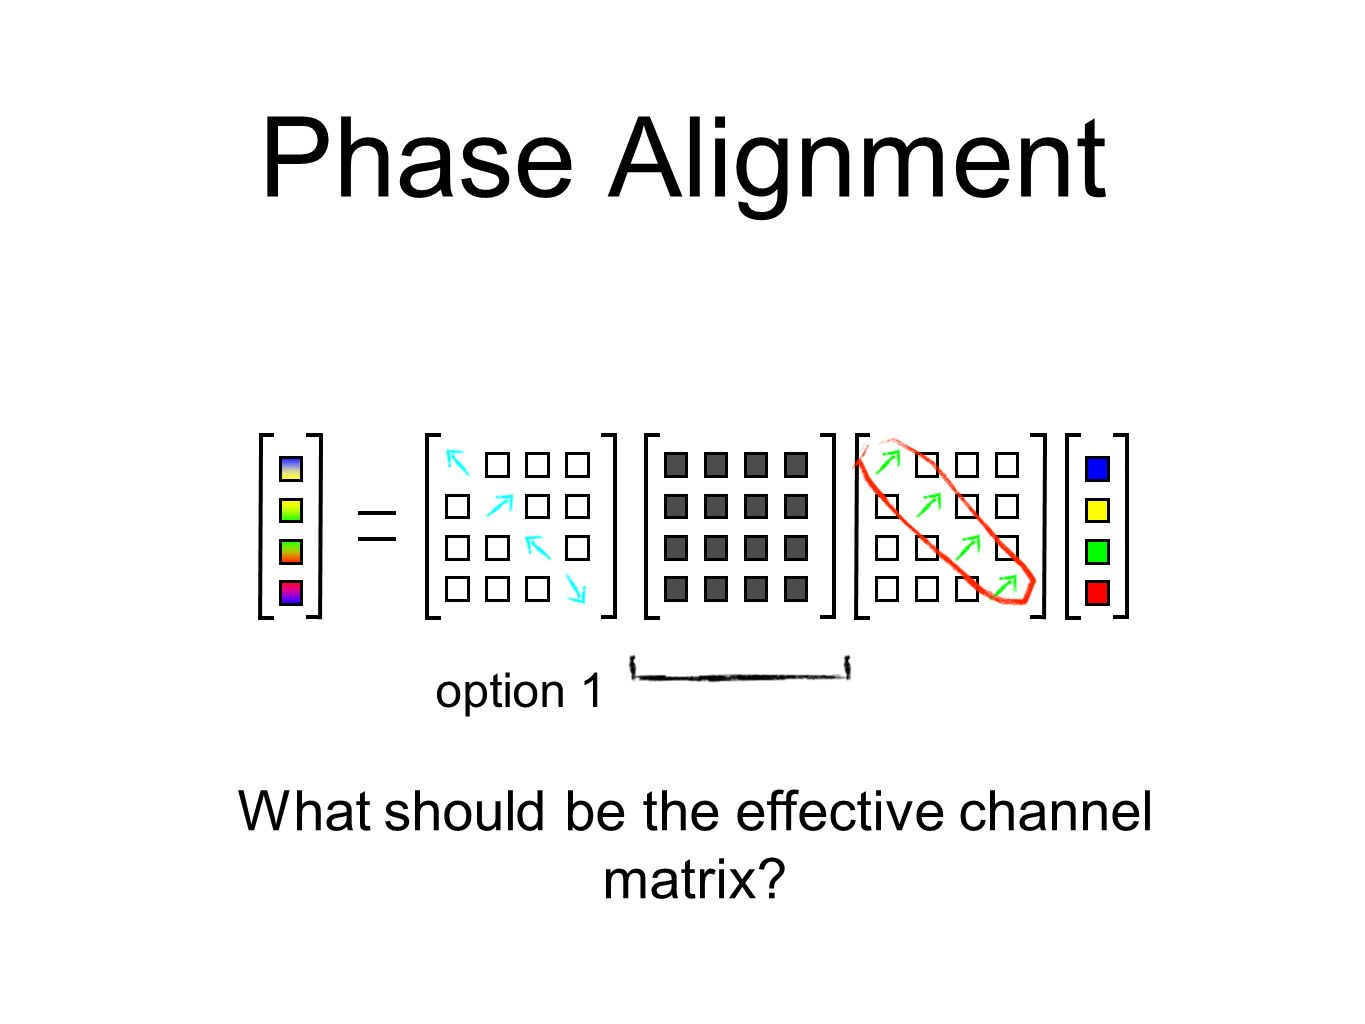 What should be the effective channel matrix